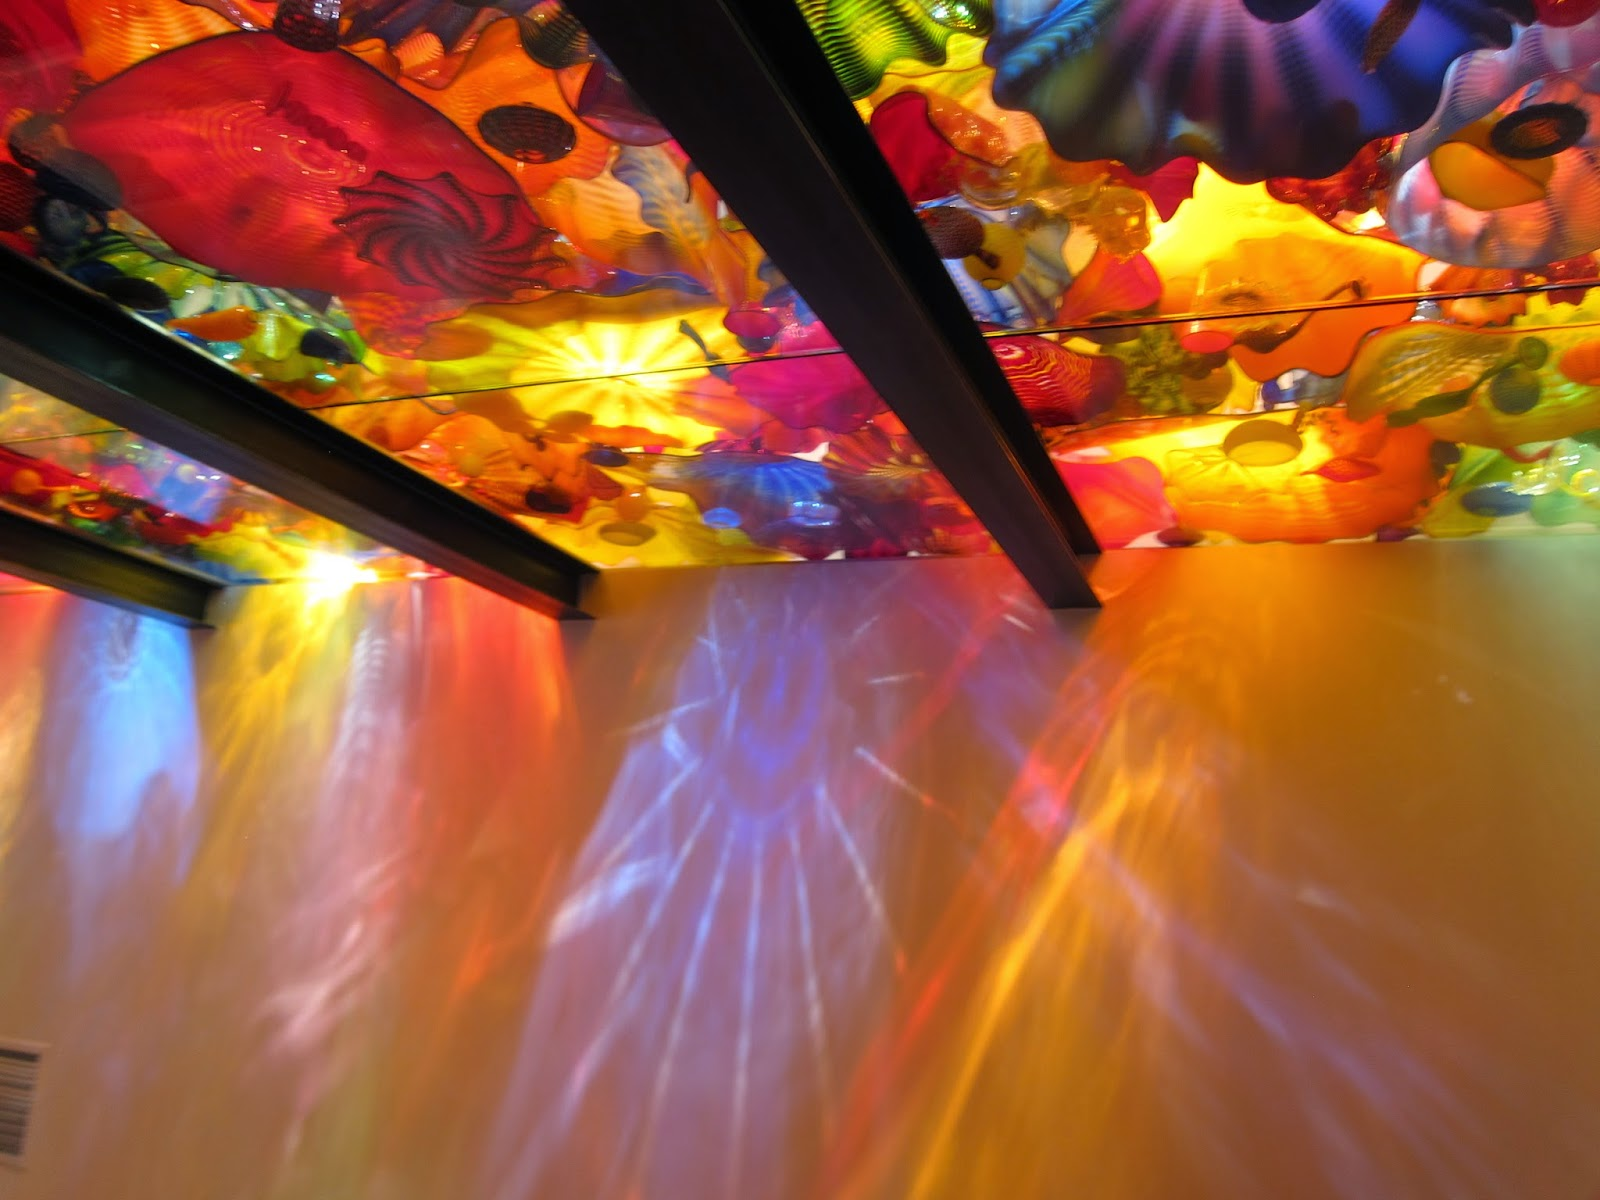 Inside the Chihuly Museum